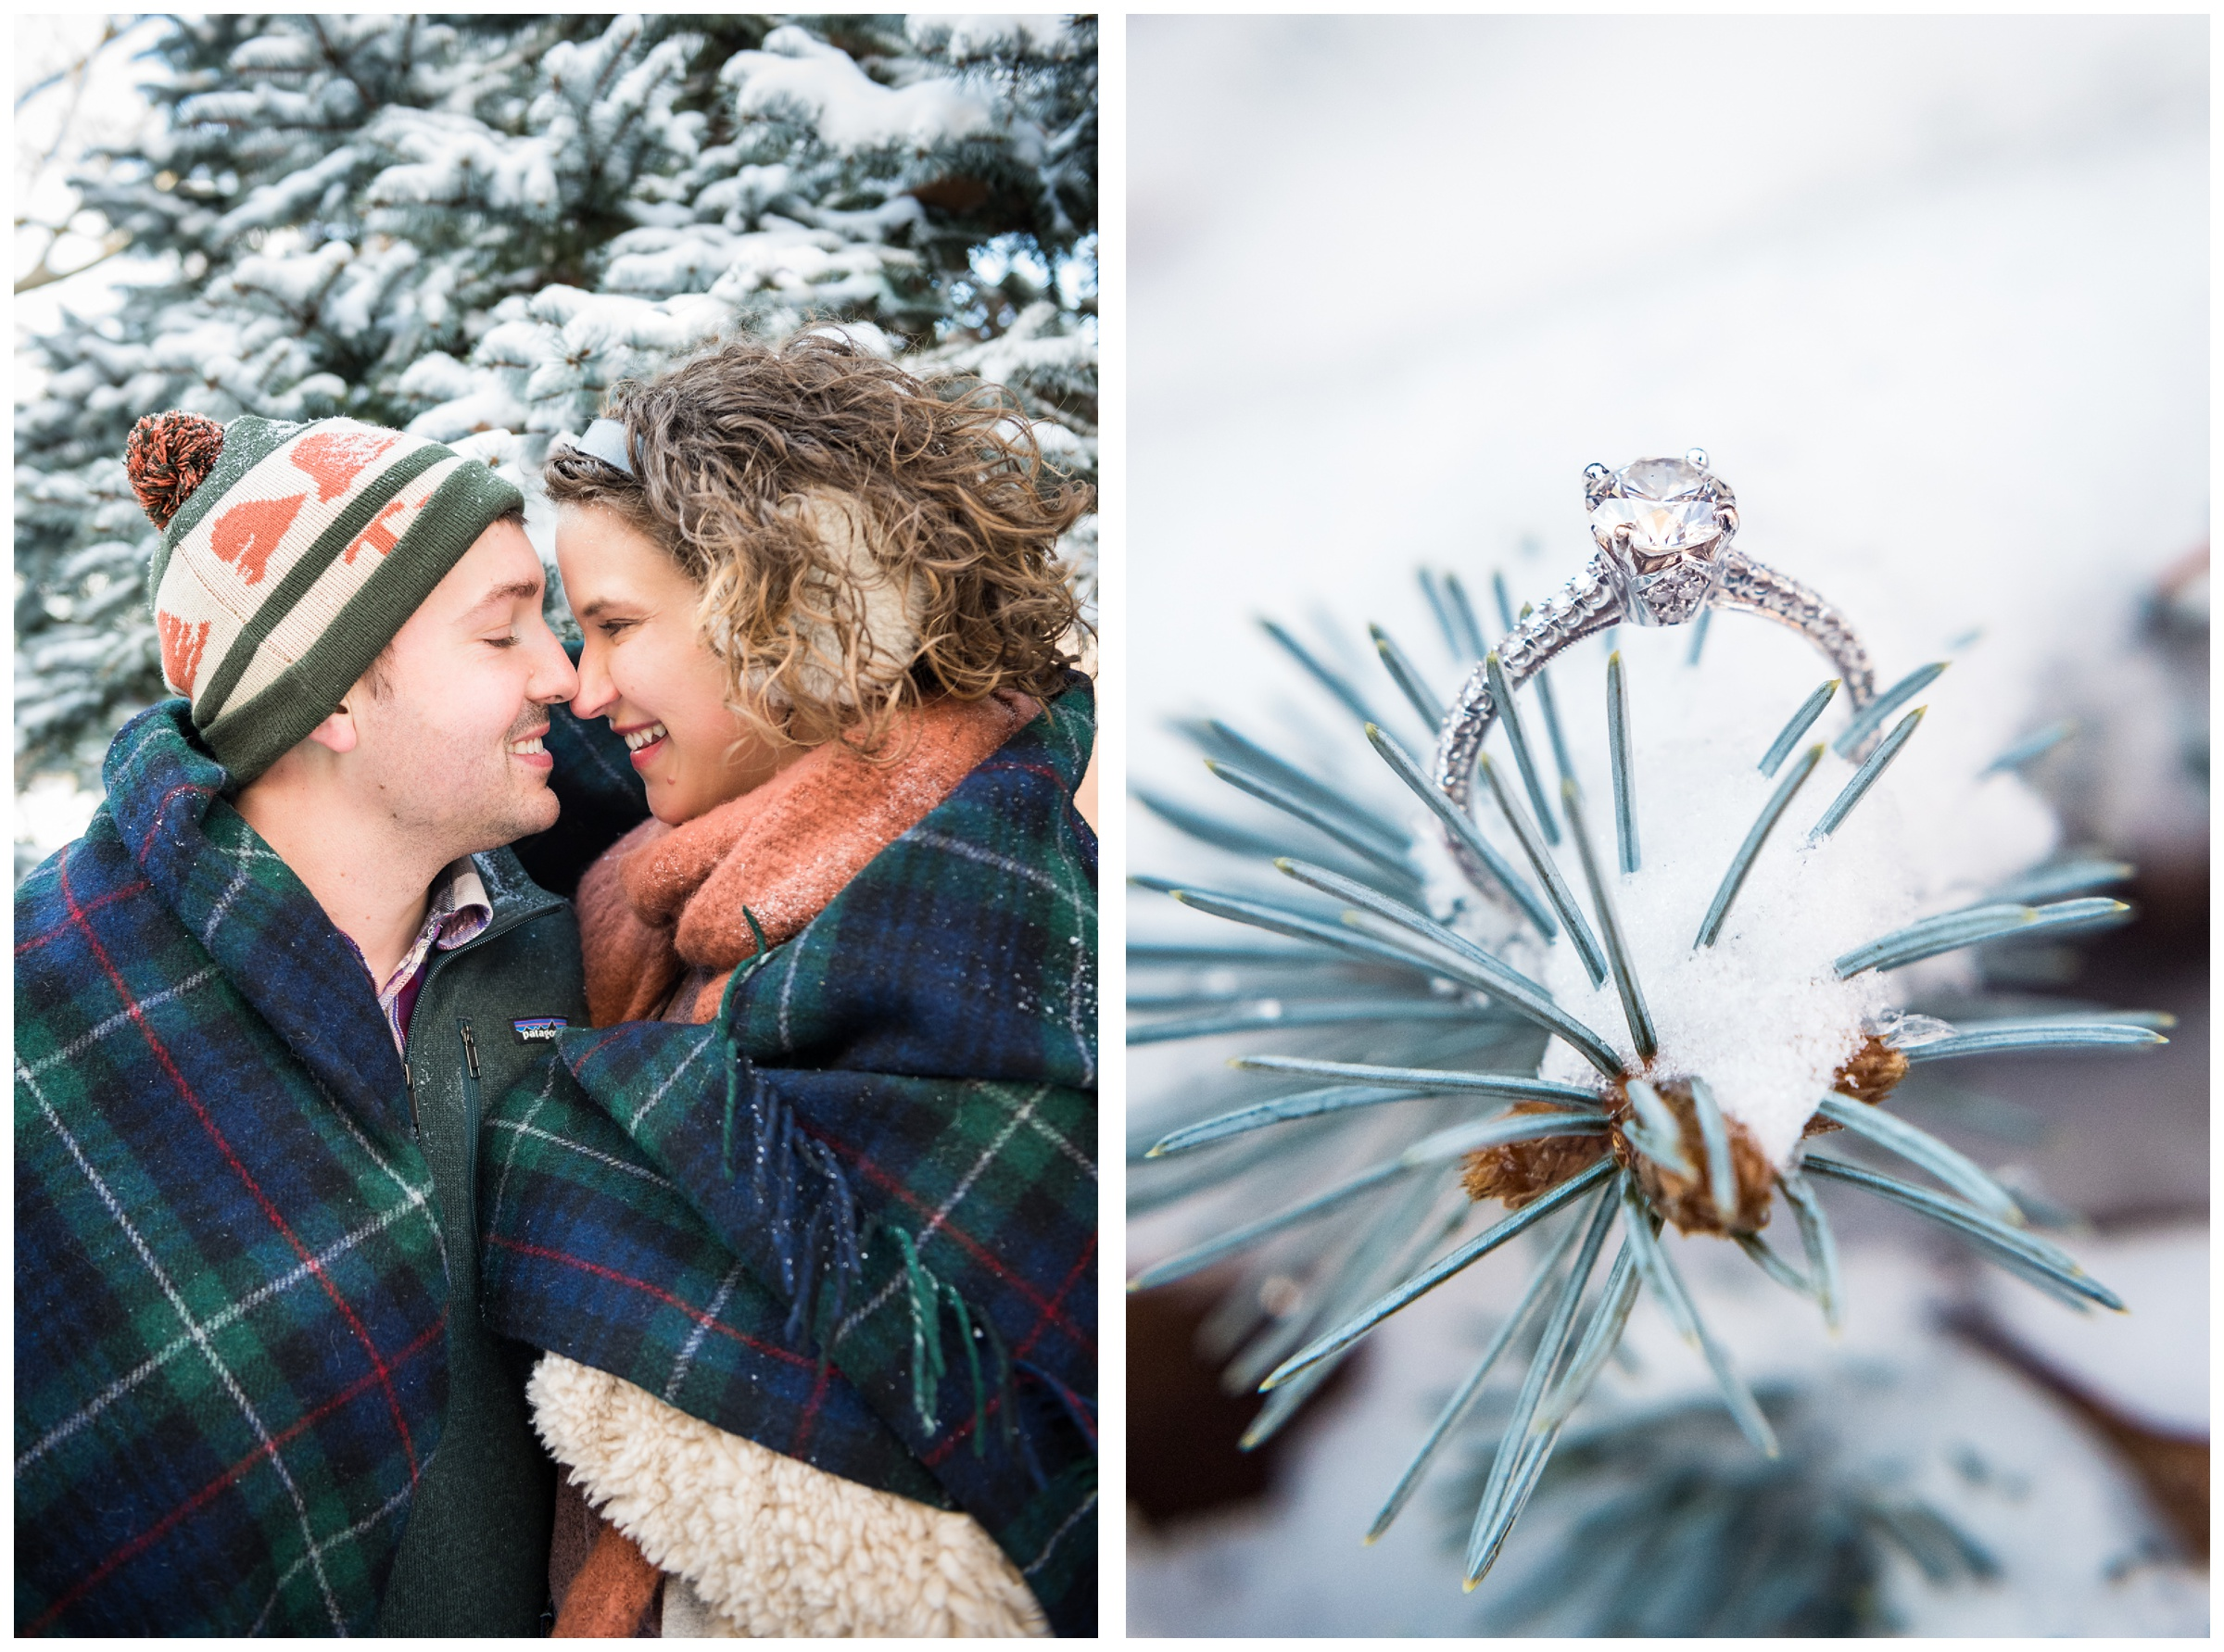 engagement ring on snowy pine branch during winter engagement session in Columbus, Ohio